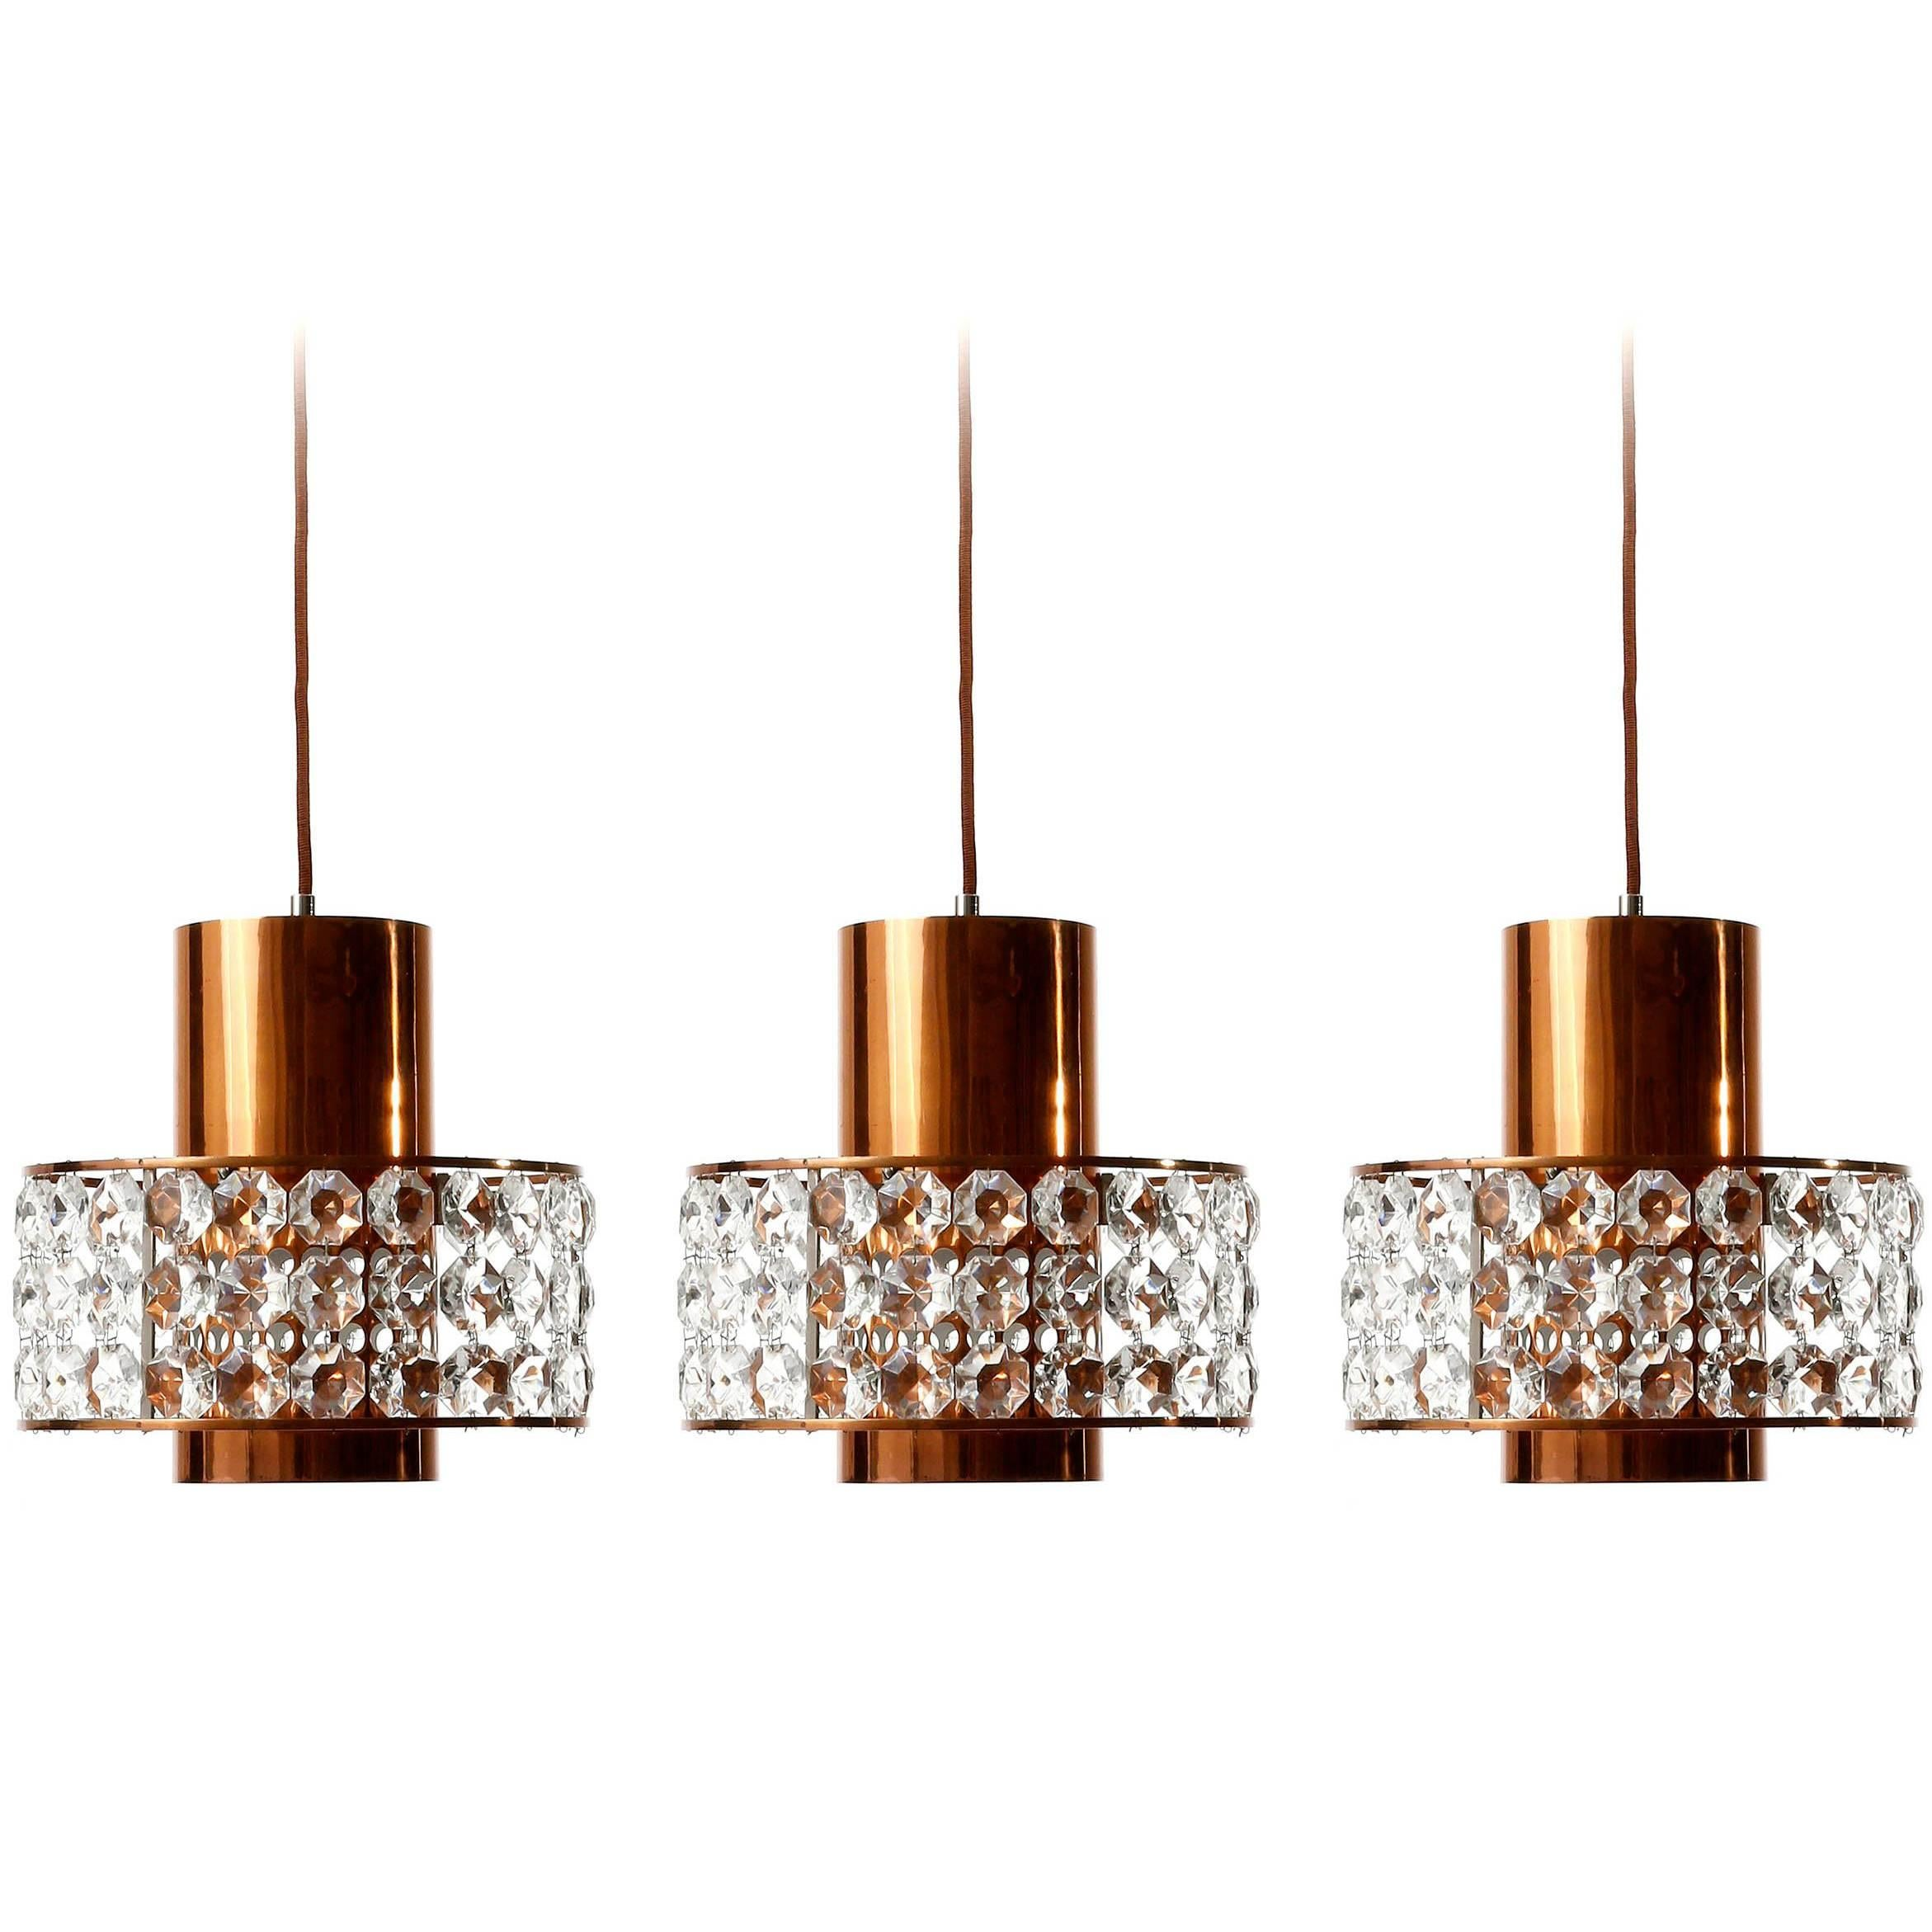 Three Bakalowits Pendant Lights Lanterns, Copper Nickel Crystal Glass,  1960s For Sale